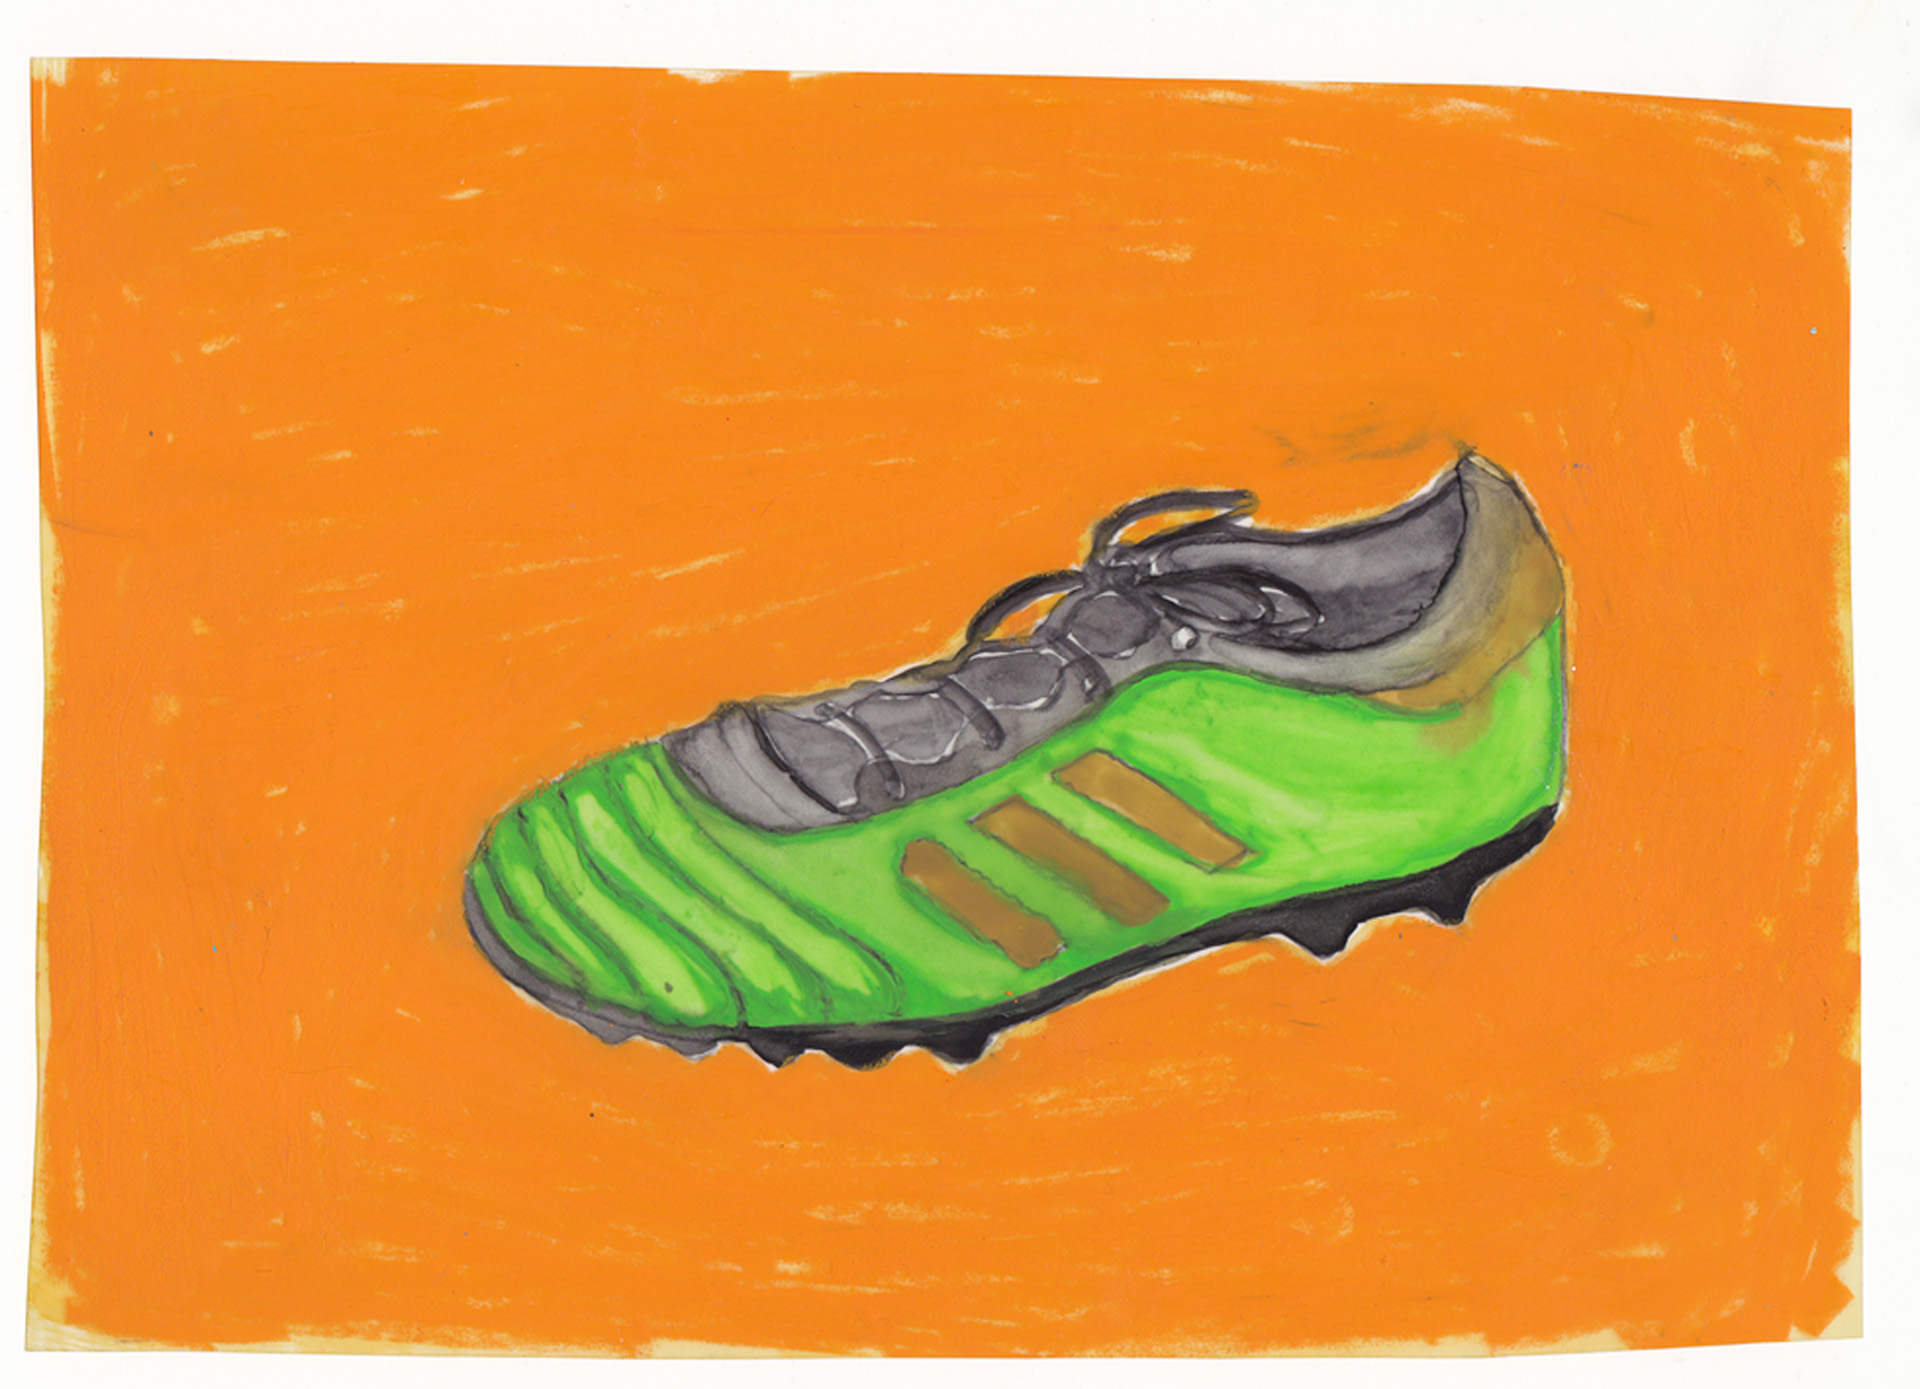 drawings_sneaker_Owen.jpg